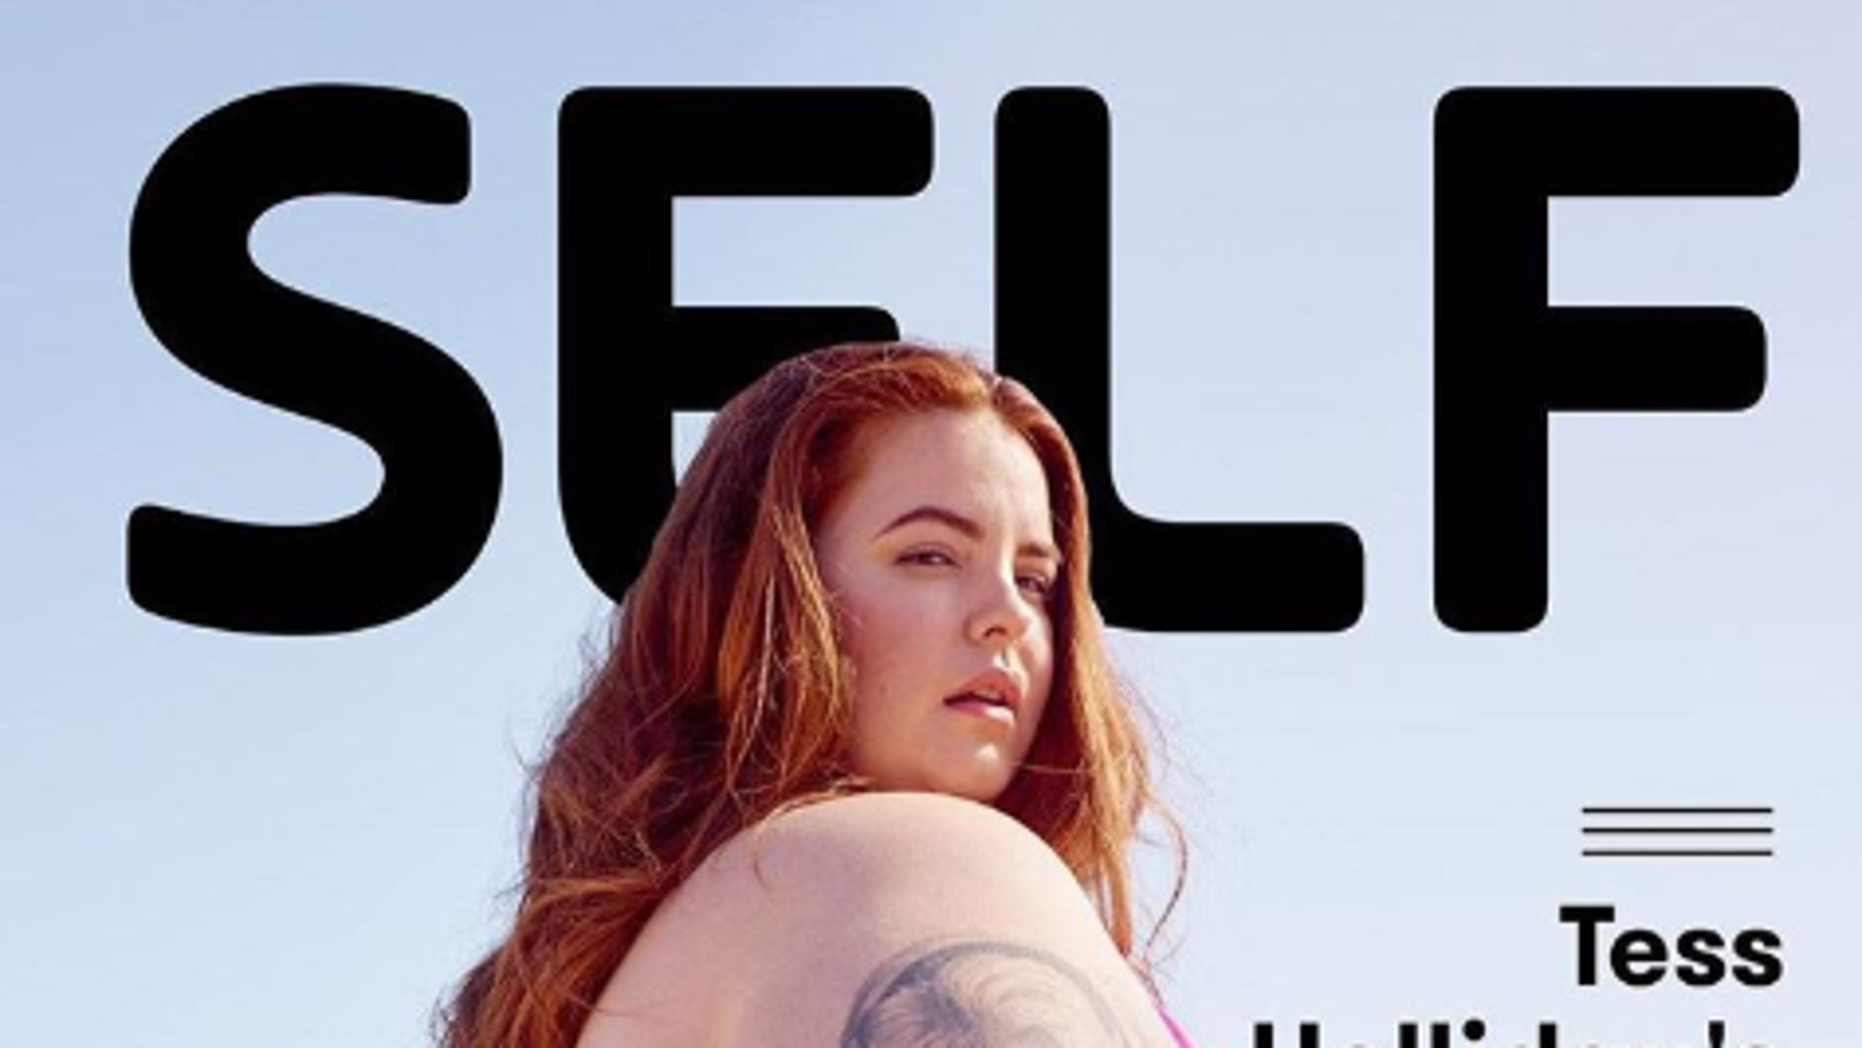 Self Magazine Debuted Its First Digital Cover This Week Which Showed Plus Size Model